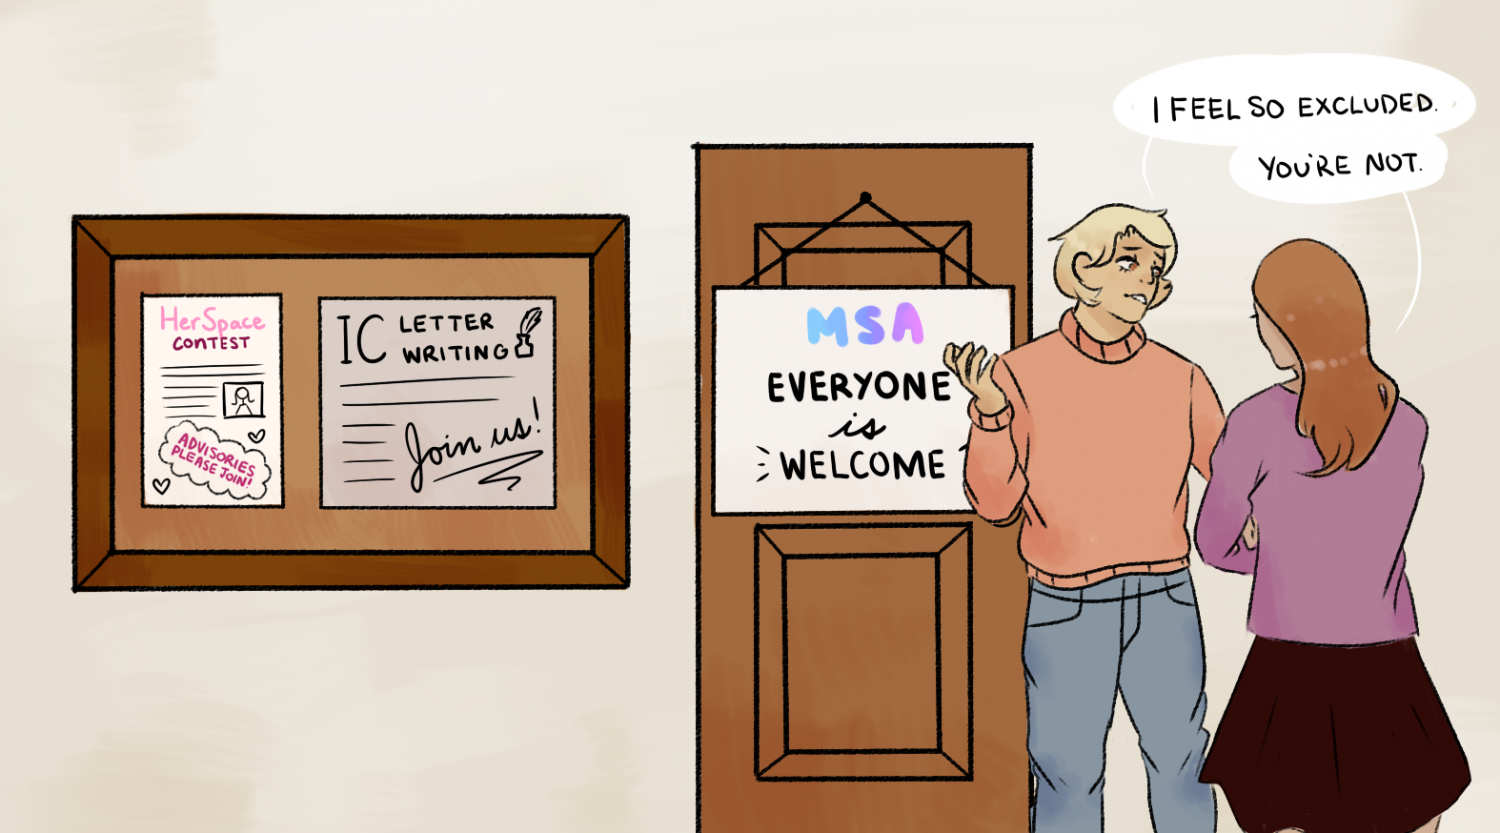 Every year MSA has to reinforce the idea that everyone is welcome. It's time to change that.